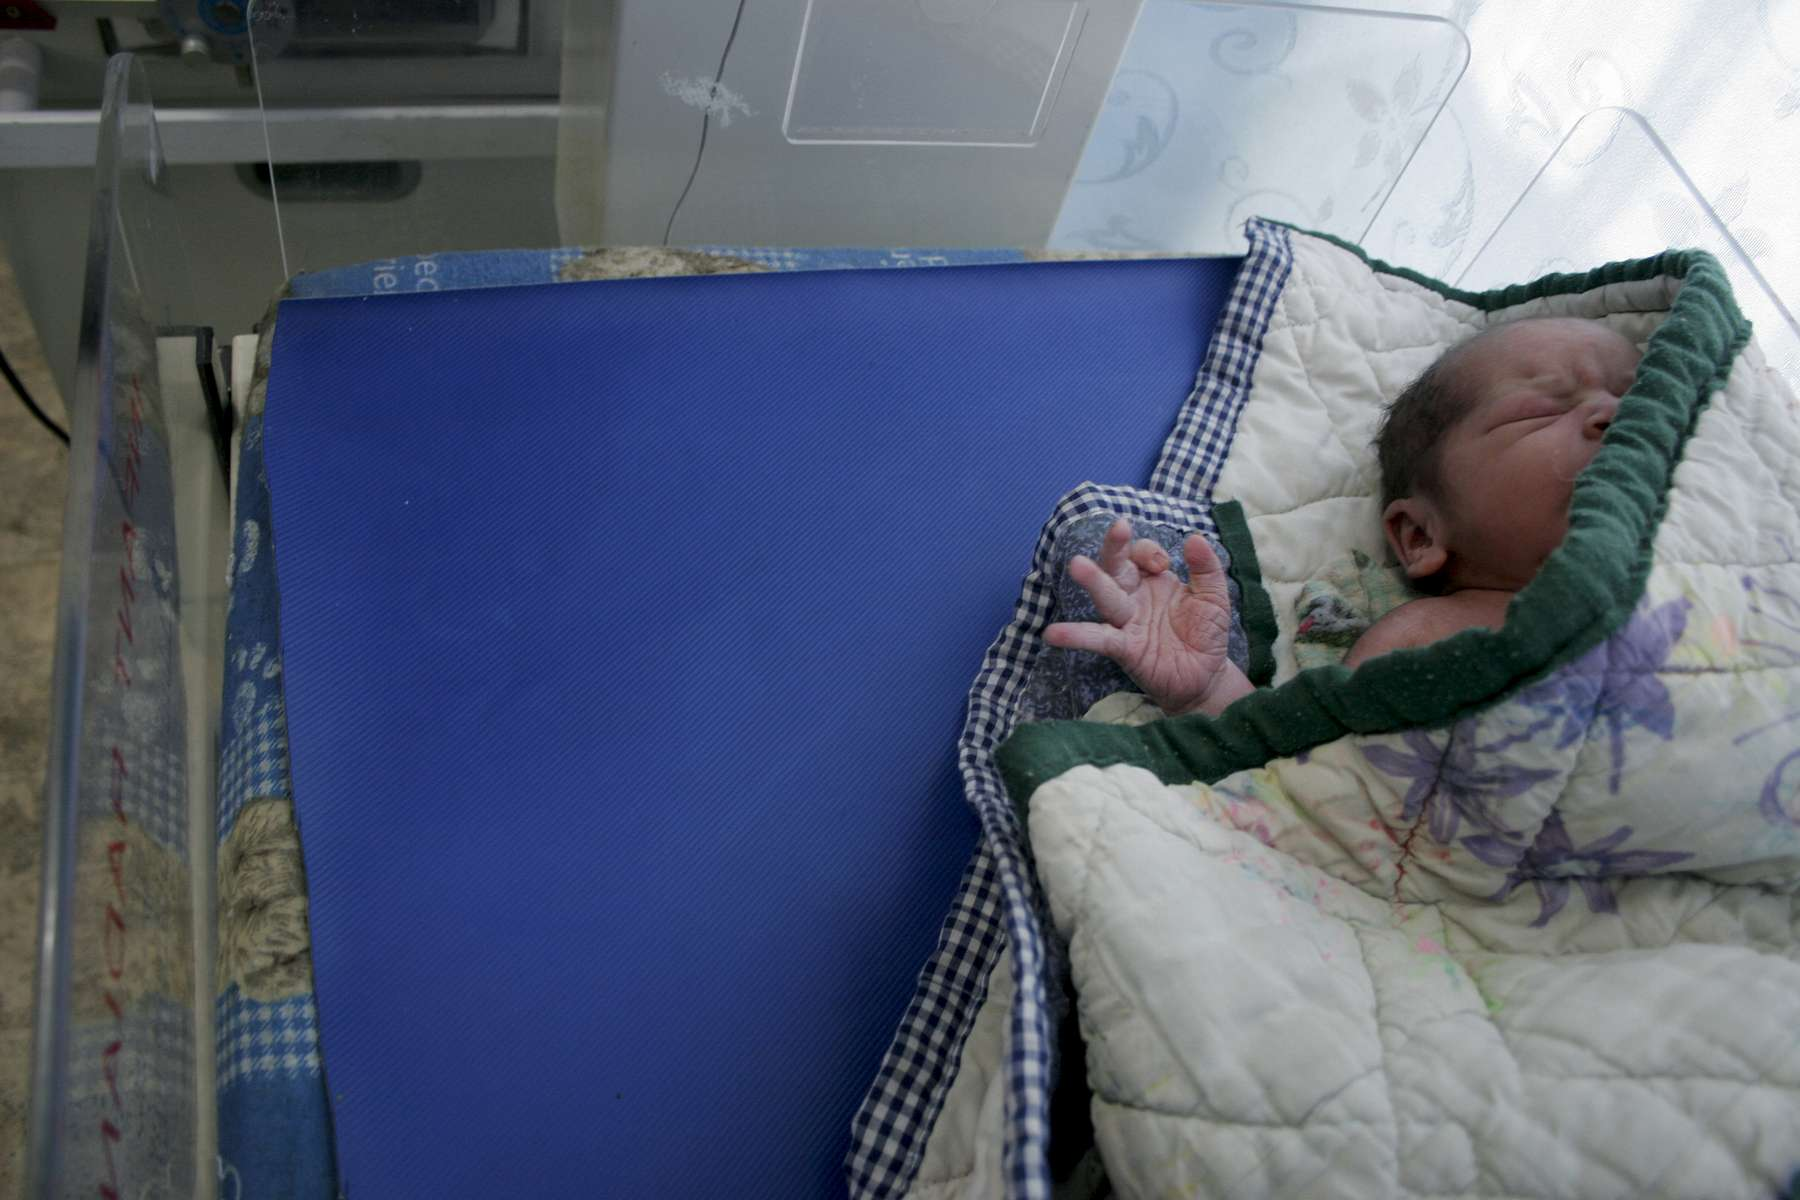 A newborn, delivered by caesarean section, in the hospital's nursery. One in four Afghan children do not live to the age of five. Lowering mortality rates for women and children is one of the top priorities of Afghan government officials and international aid workers.